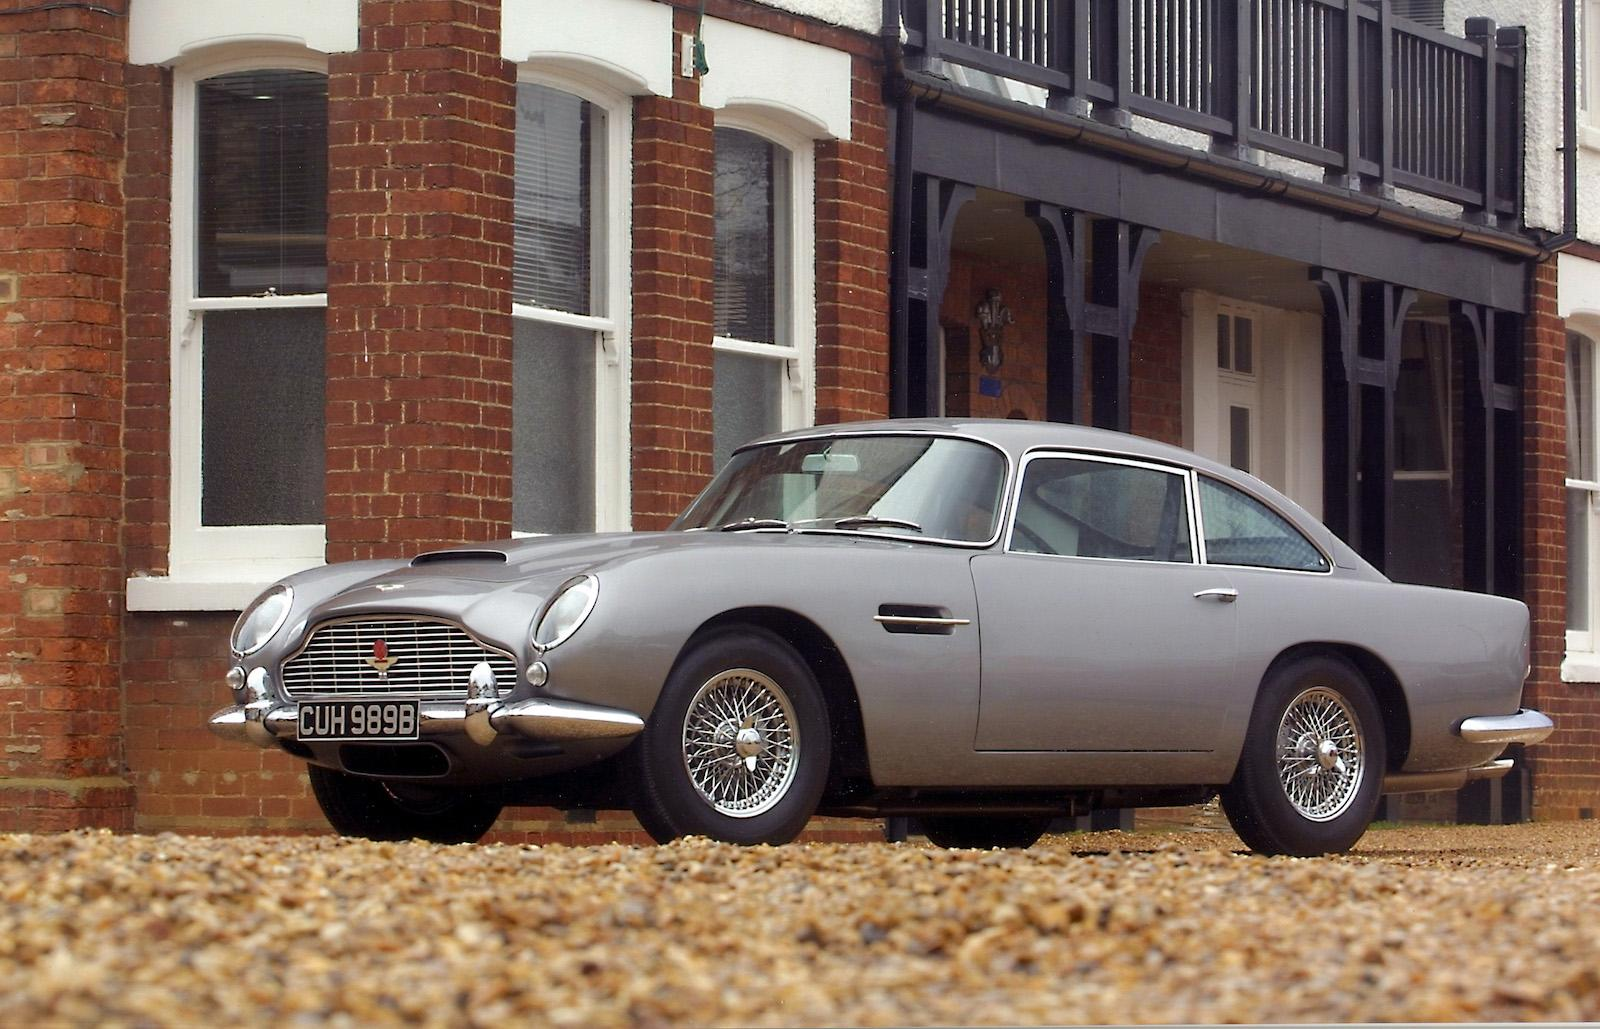 Annual Aston Martin sale moves away from Newport Pagnell